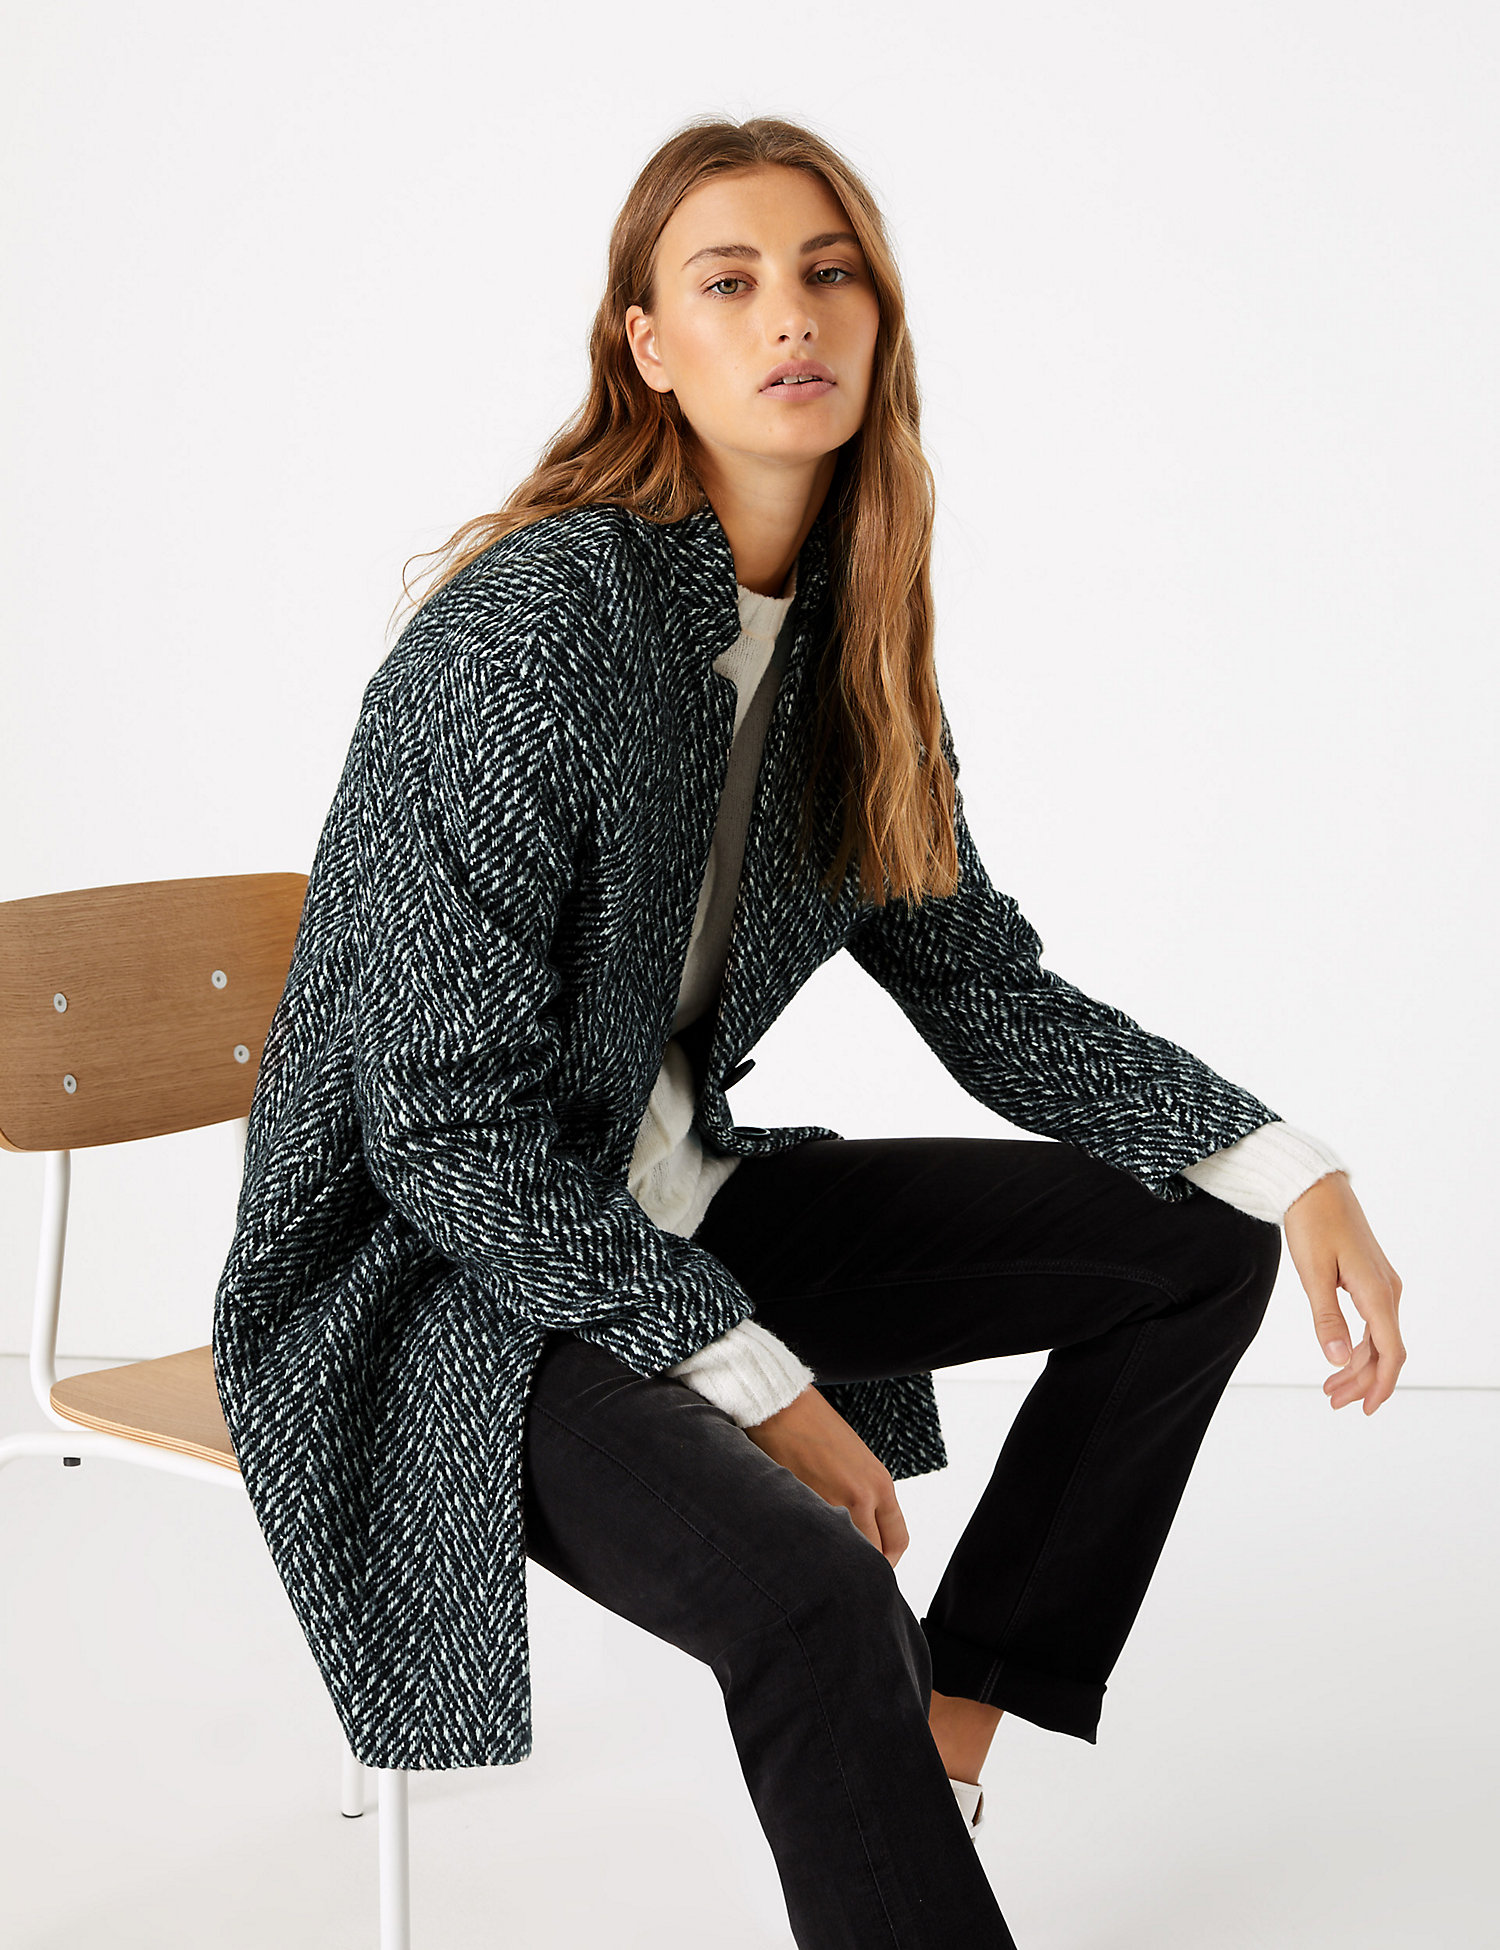 M&S Herringbone Cocoon Coat £65